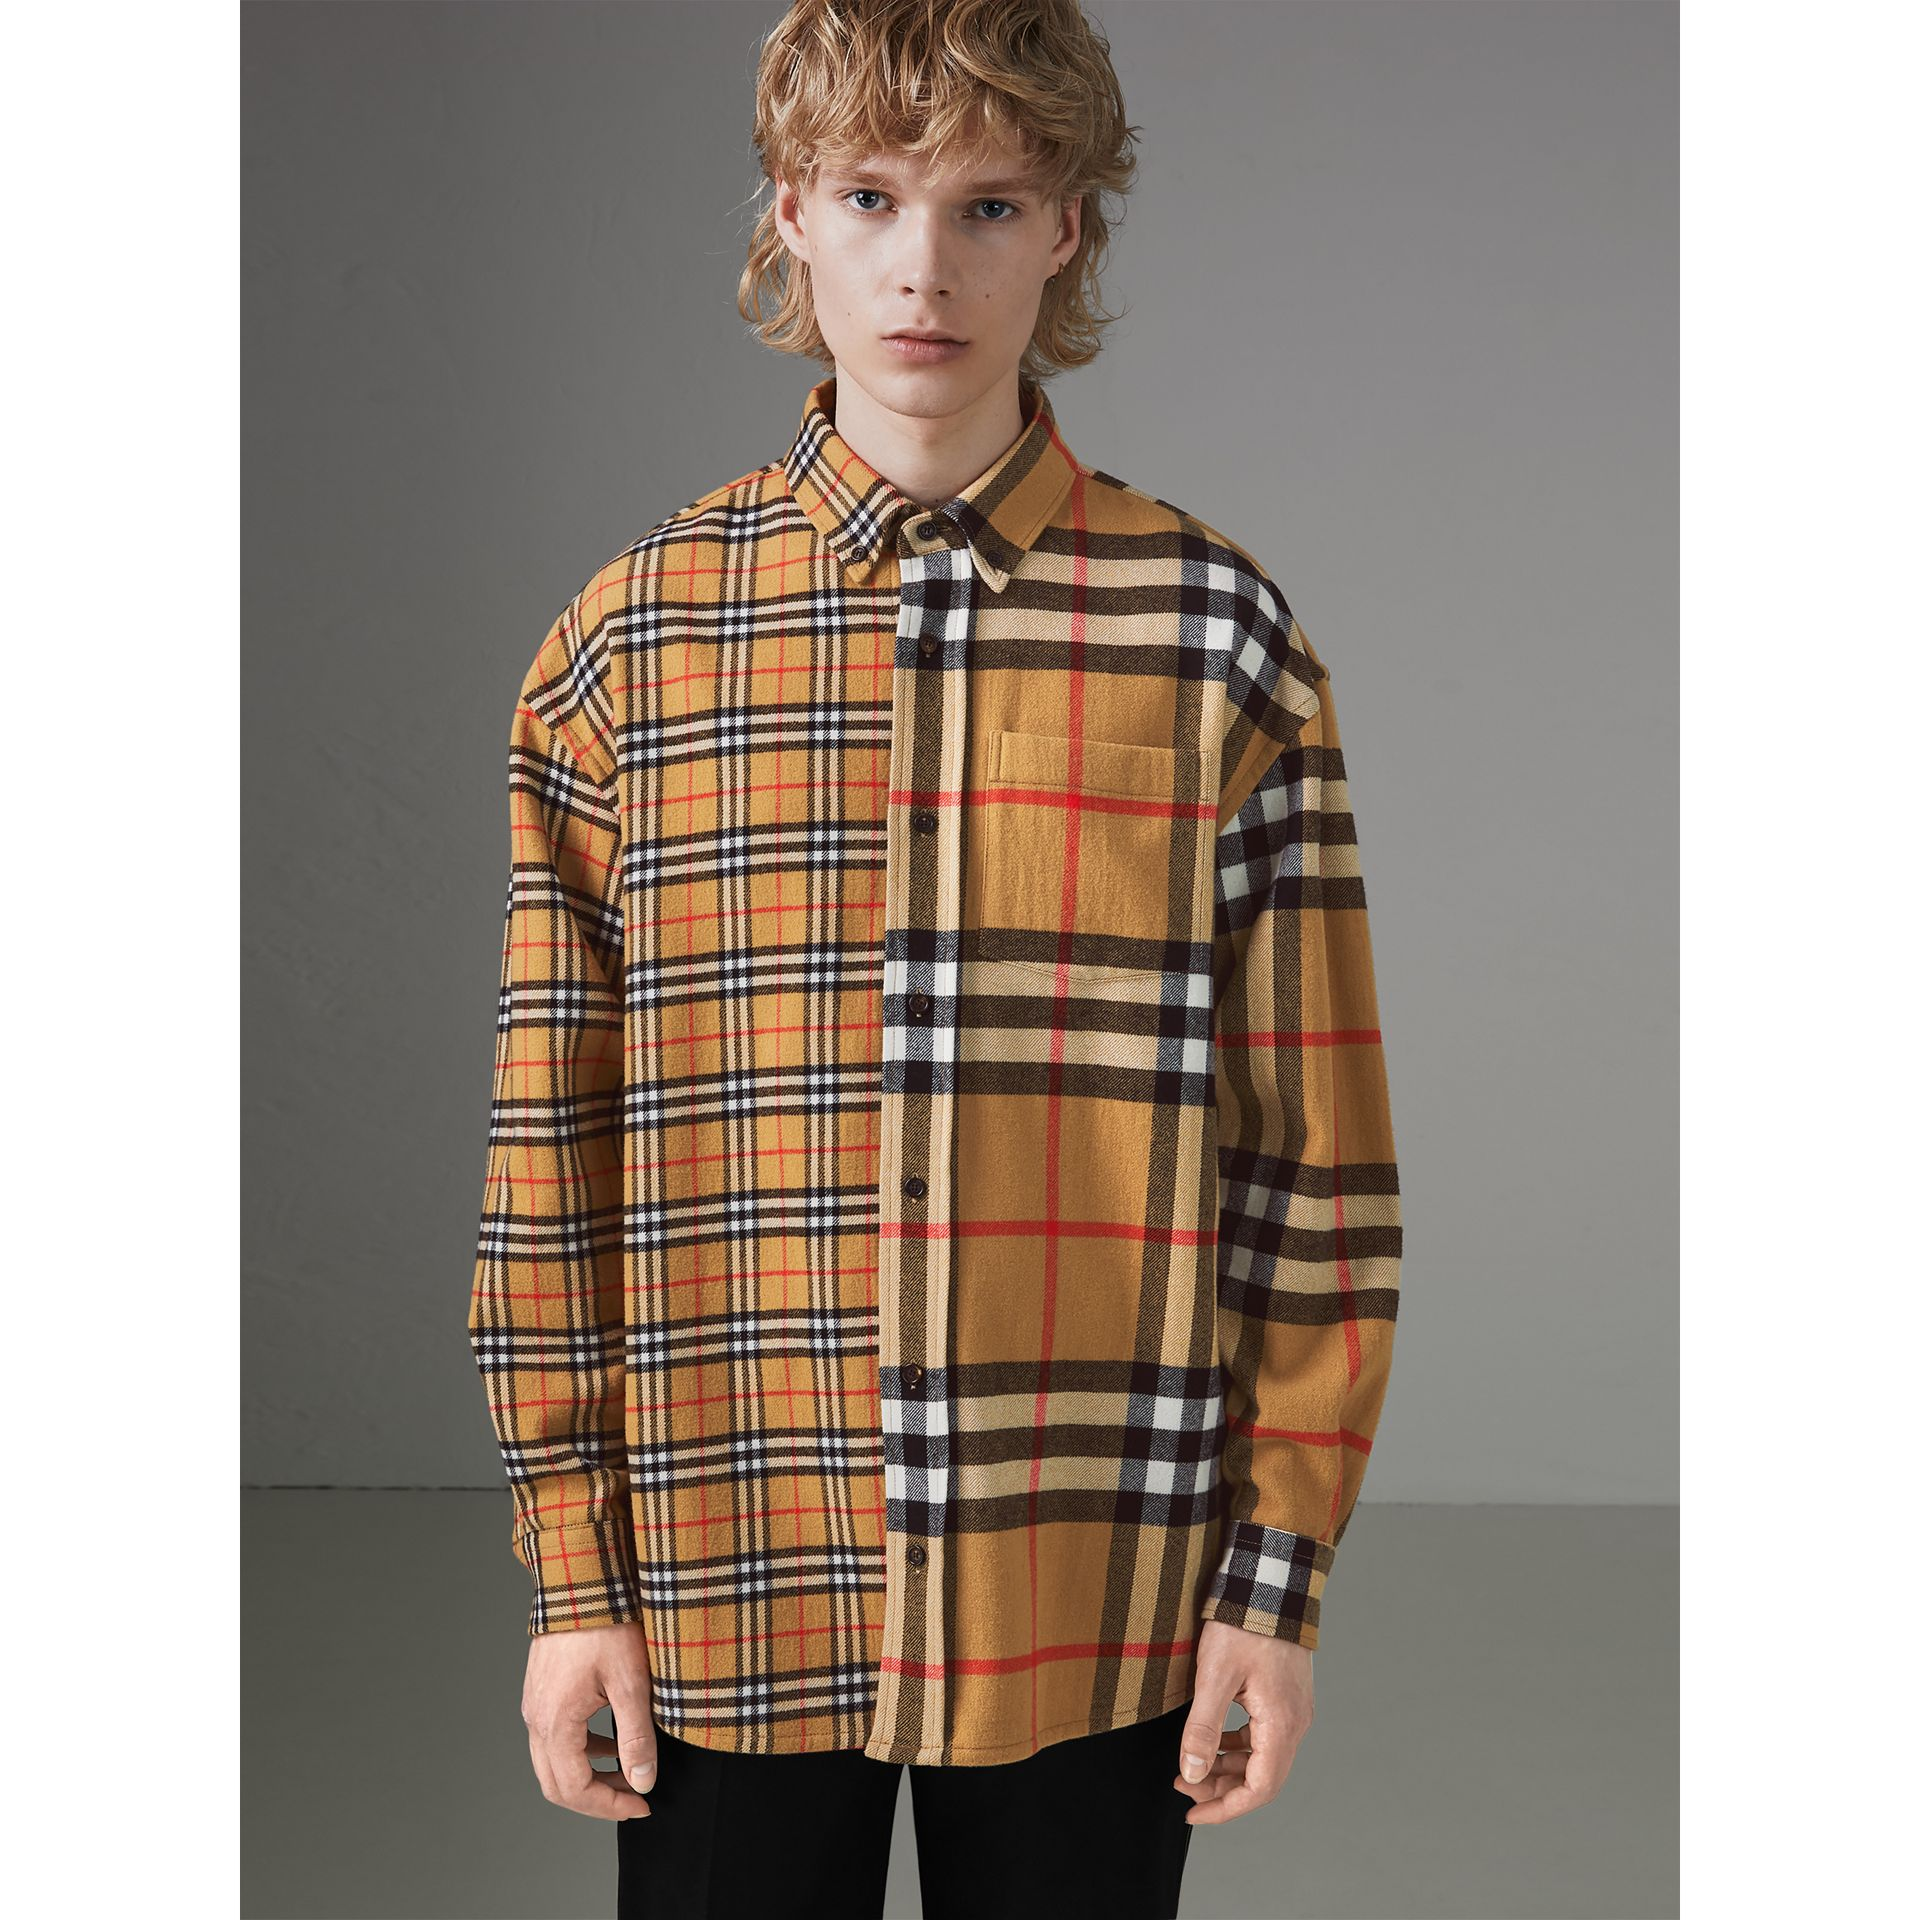 61b327f57 Burberry Gosha x Burberry Check Flannel Shirt at £390